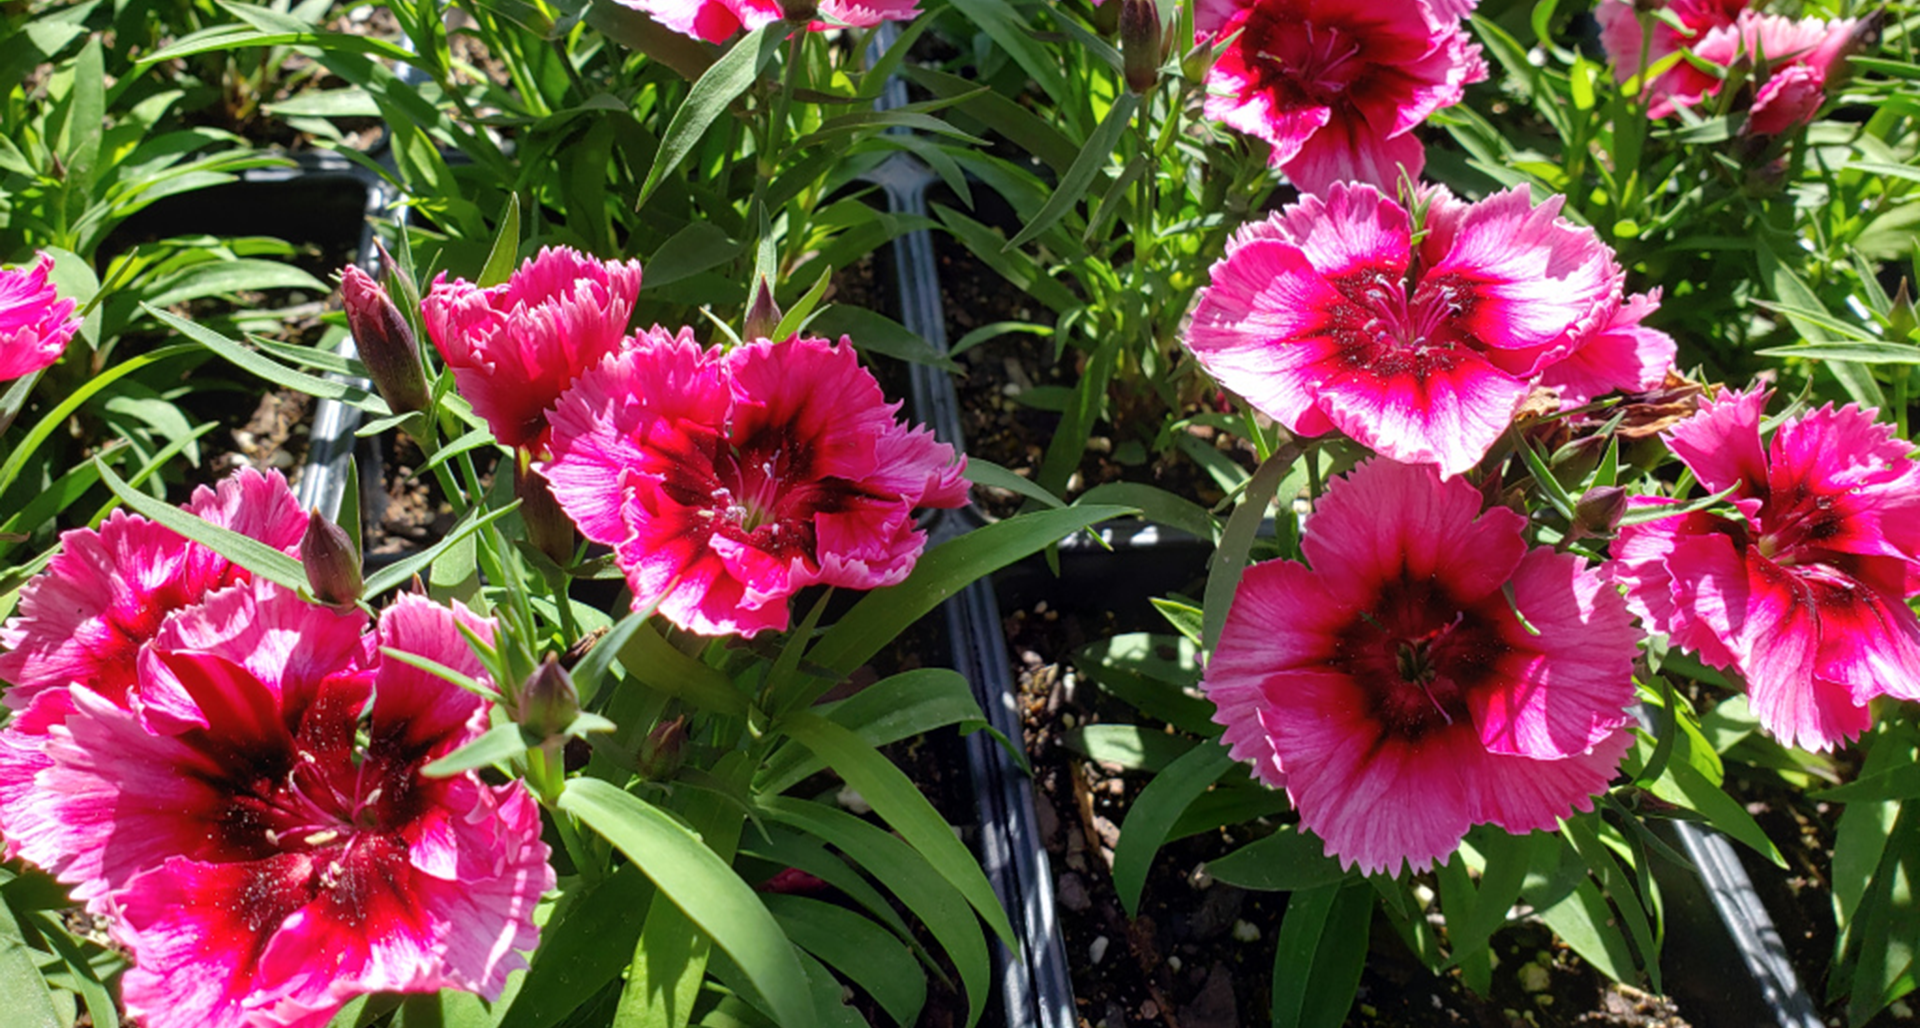 #TeachingTuesday: Dianthus, AKA Pinks or Sweet Williams